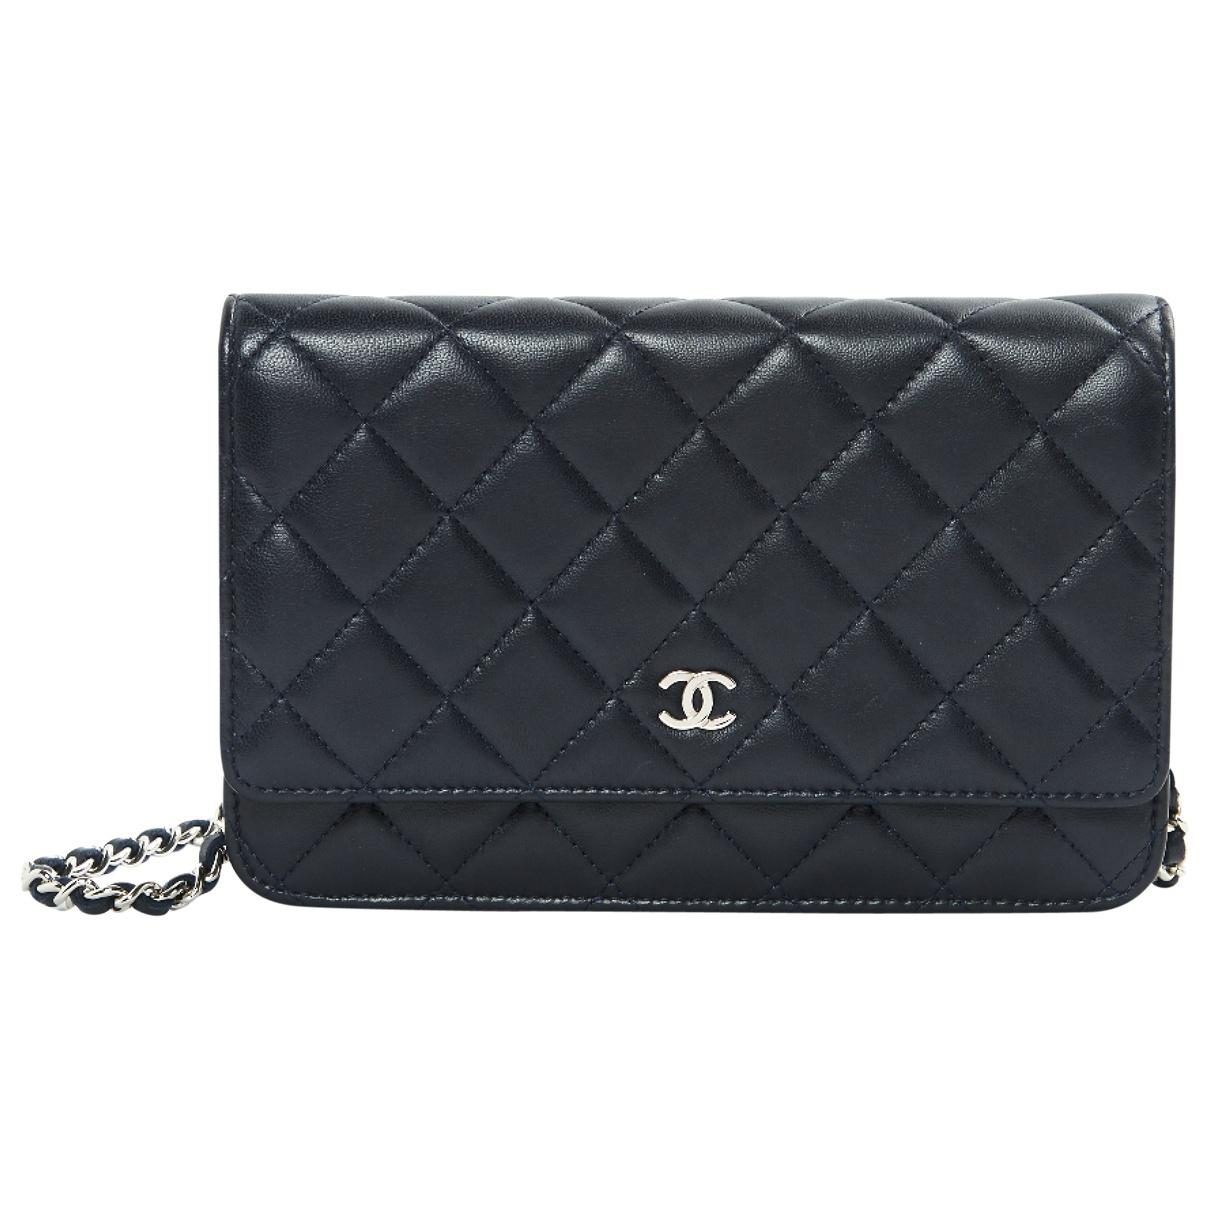 Pre-owned - Wallet on Chain leather clutch bag Chanel ipLFDMc